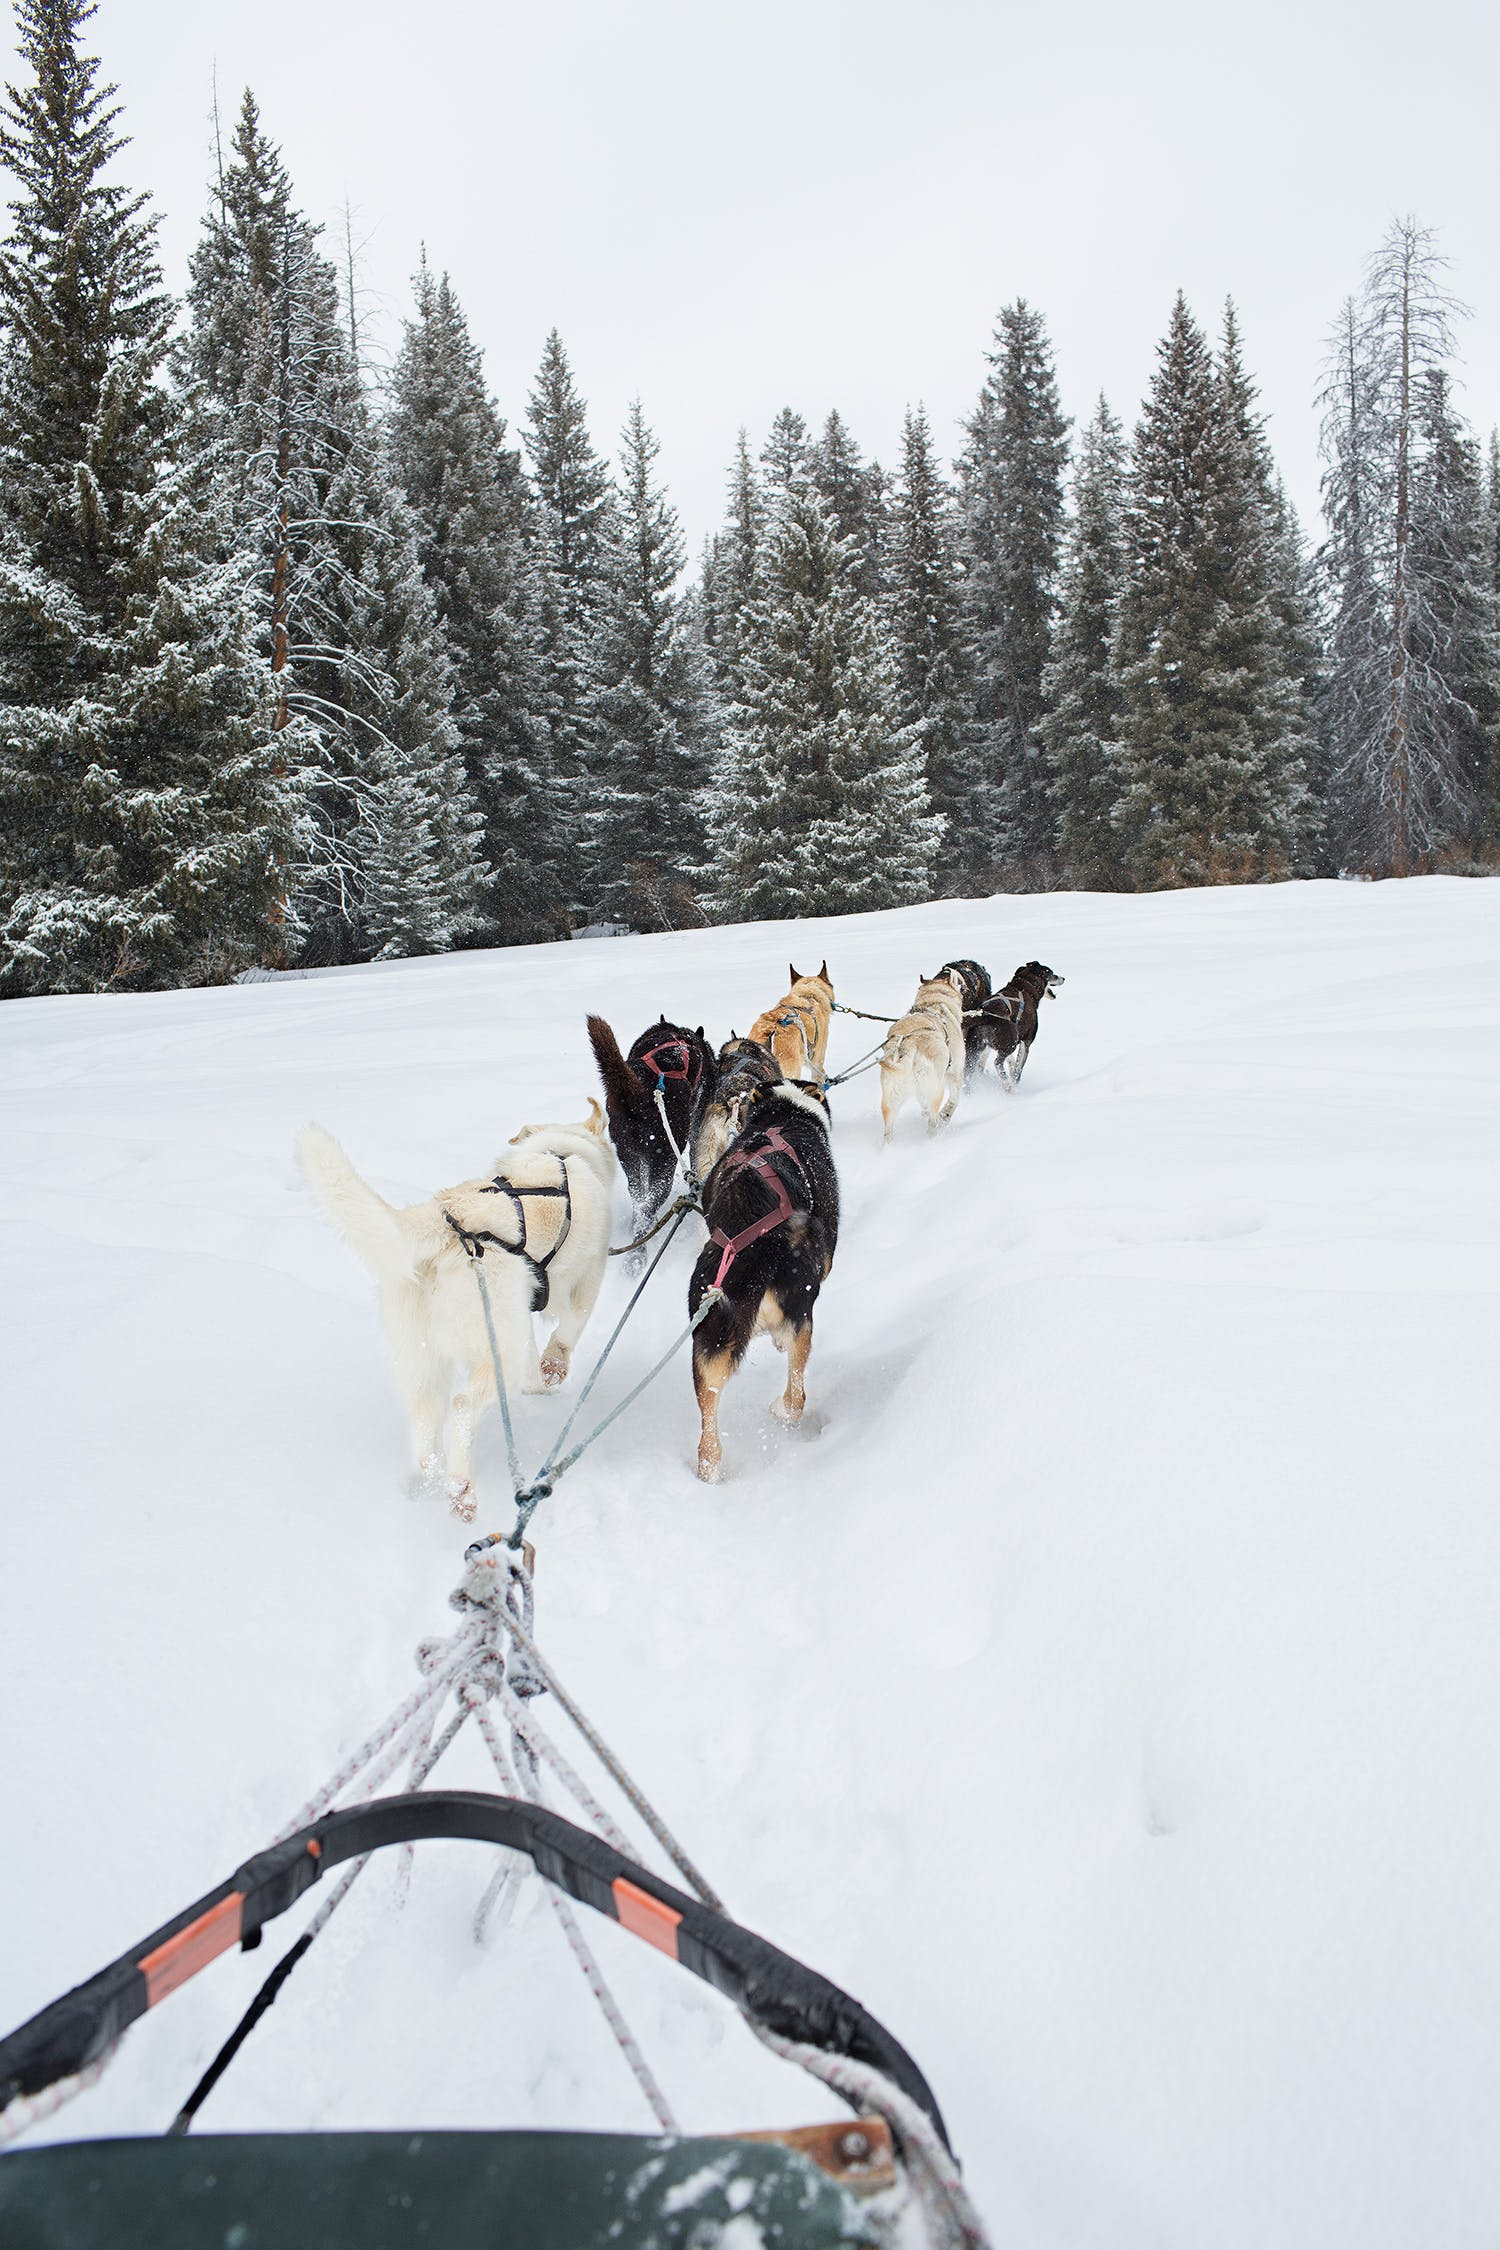 Sled dogs pulling a sled through deep snow.